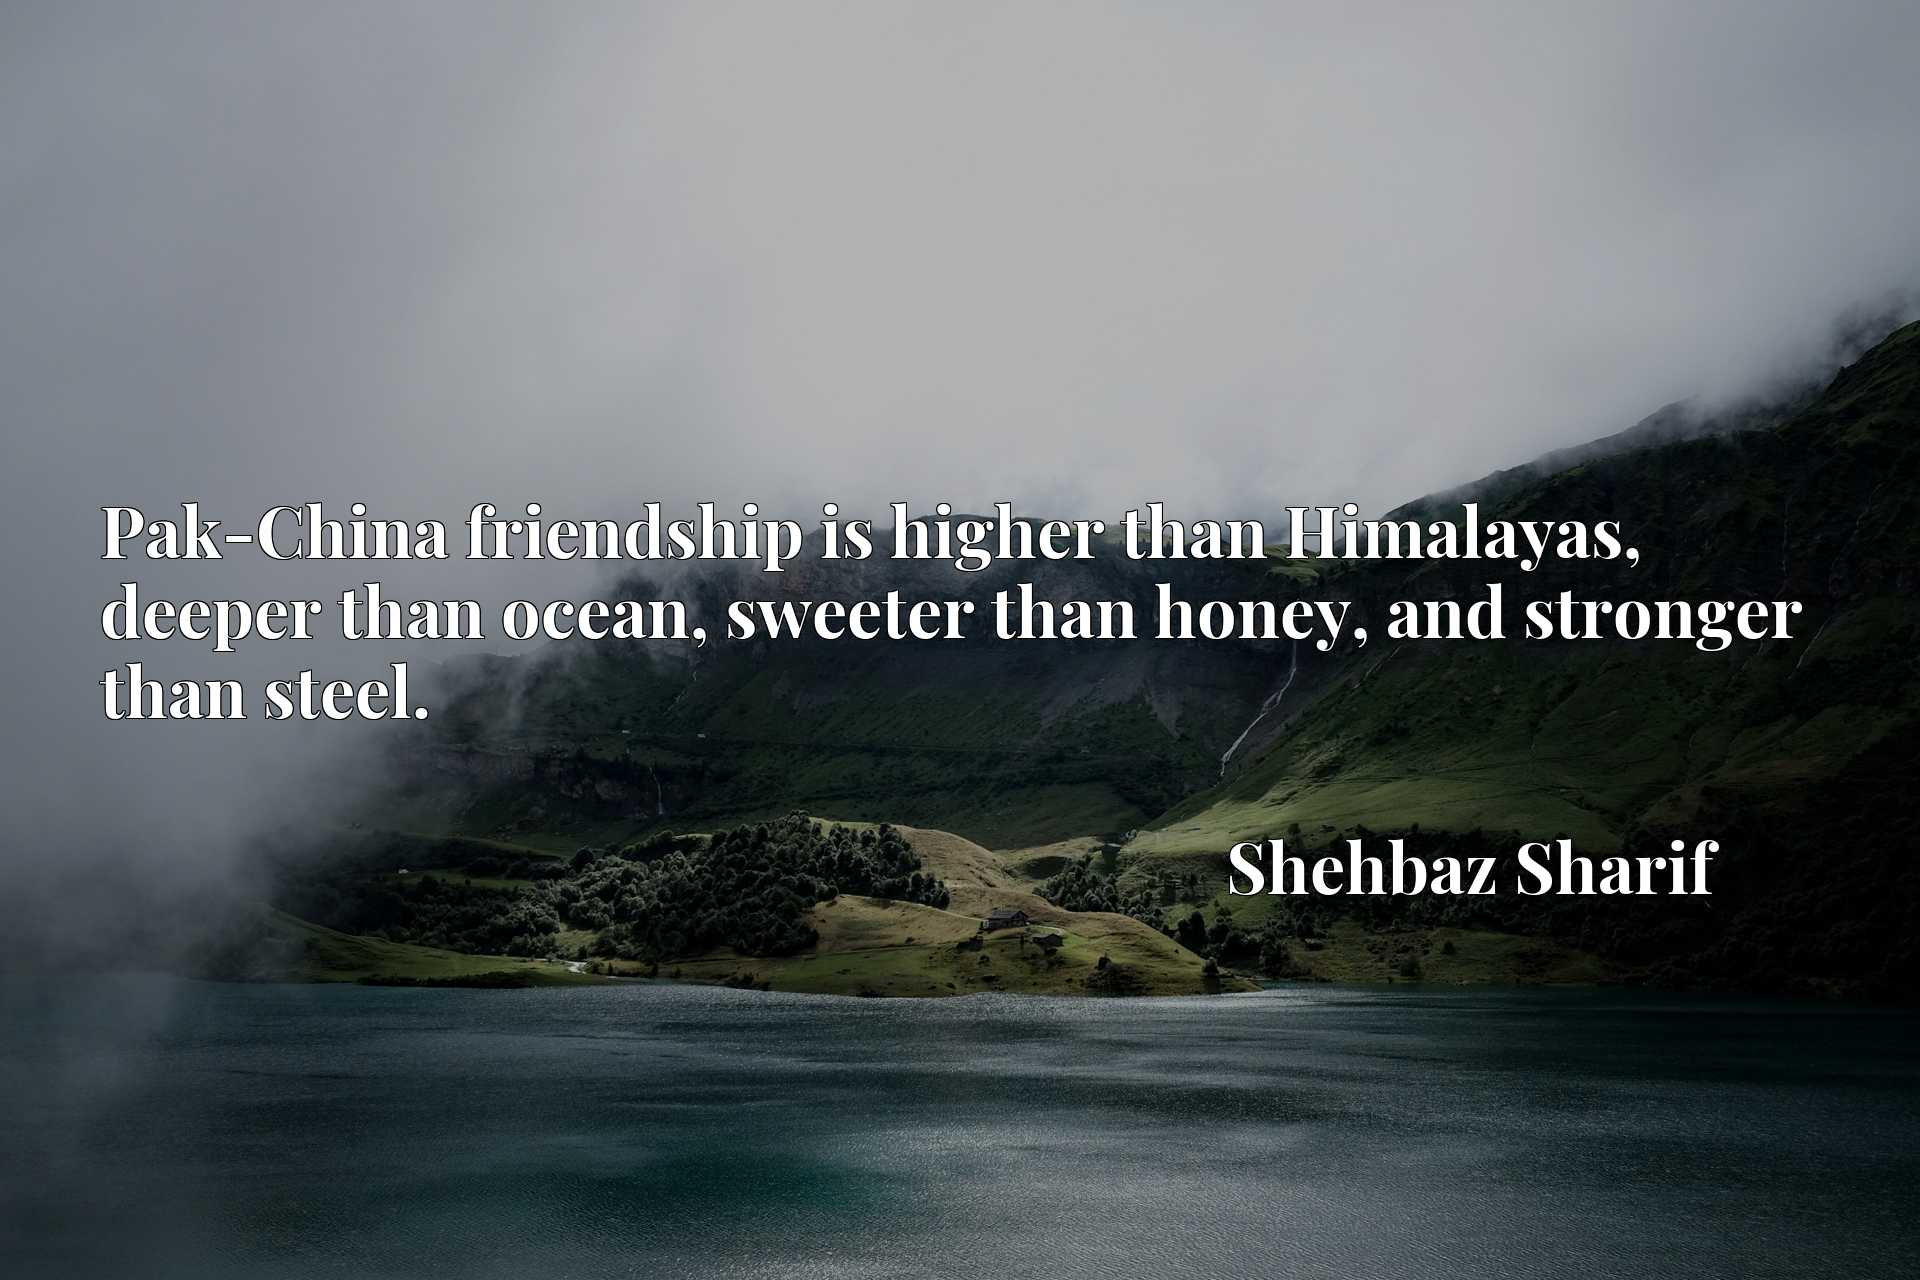 Pak-China friendship is higher than Himalayas, deeper than ocean, sweeter than honey, and stronger than steel.